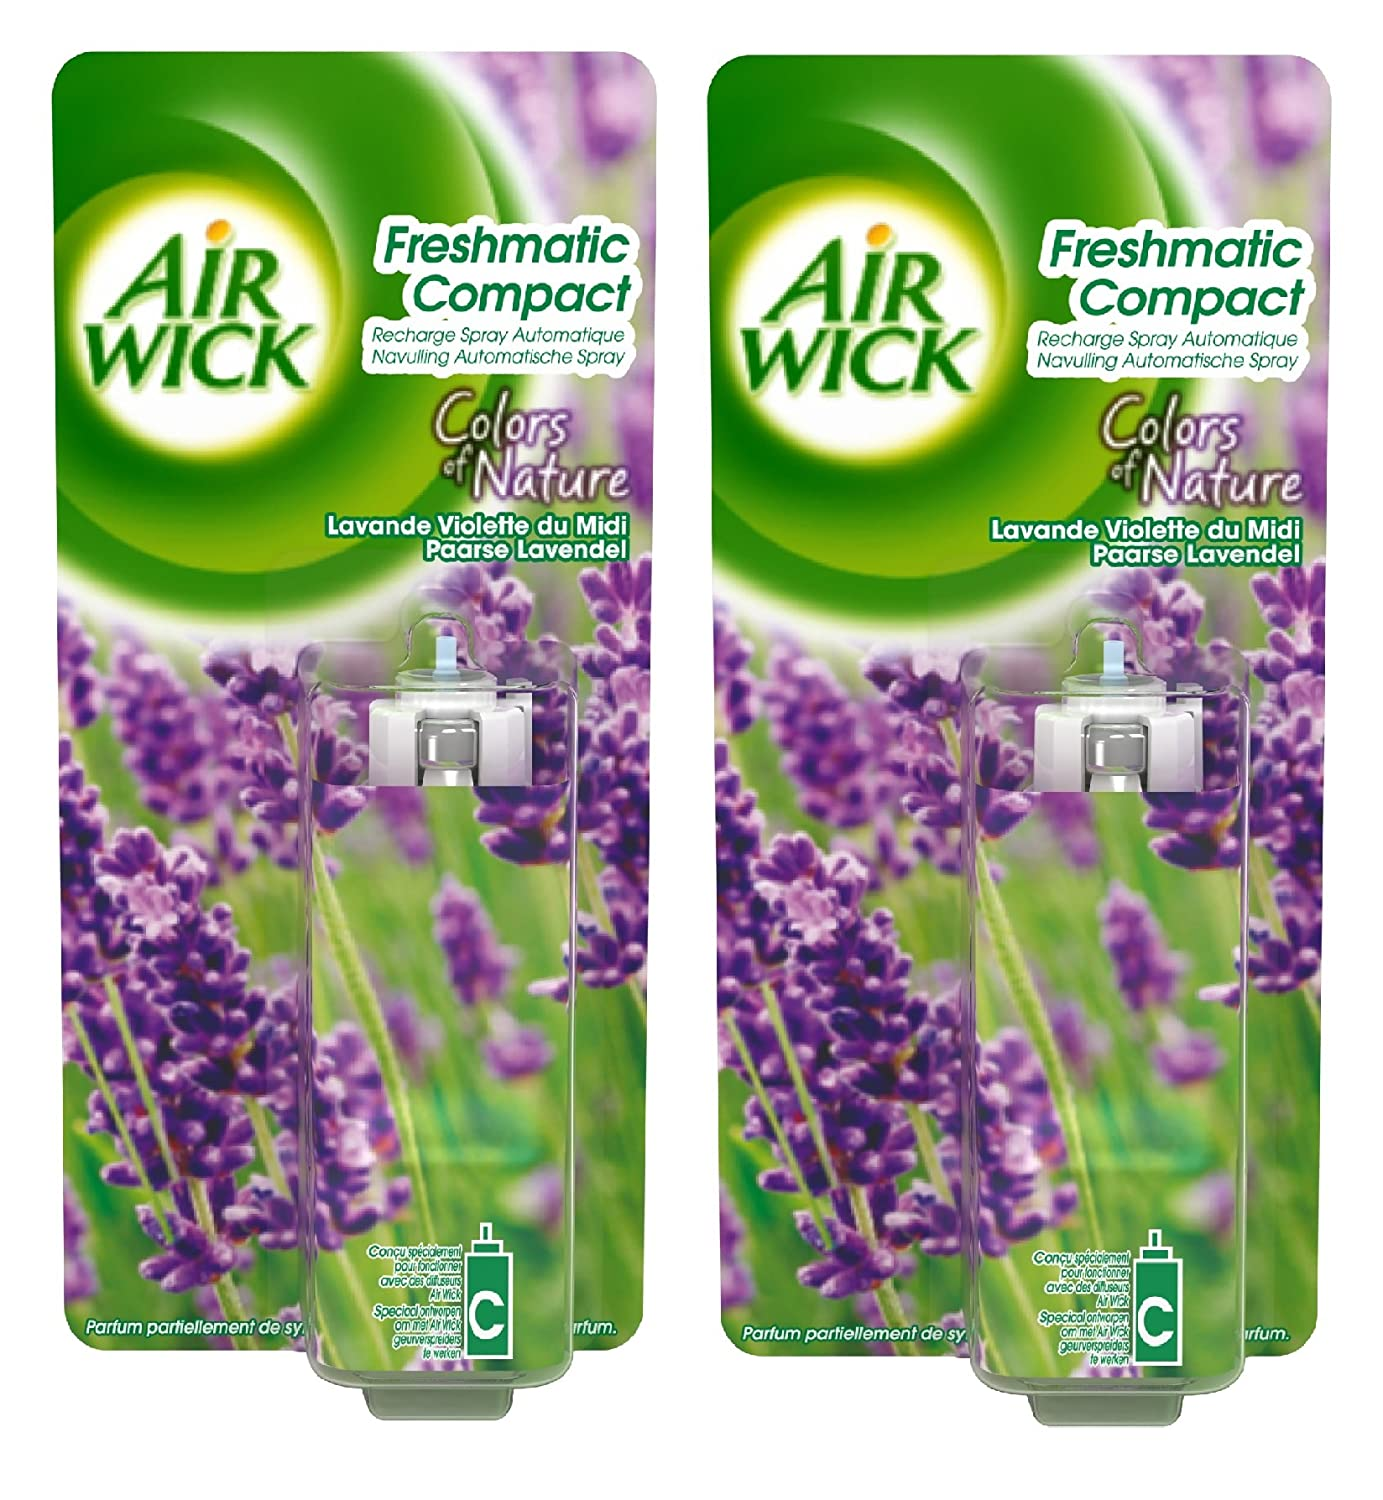 air wick freshmatic instructions